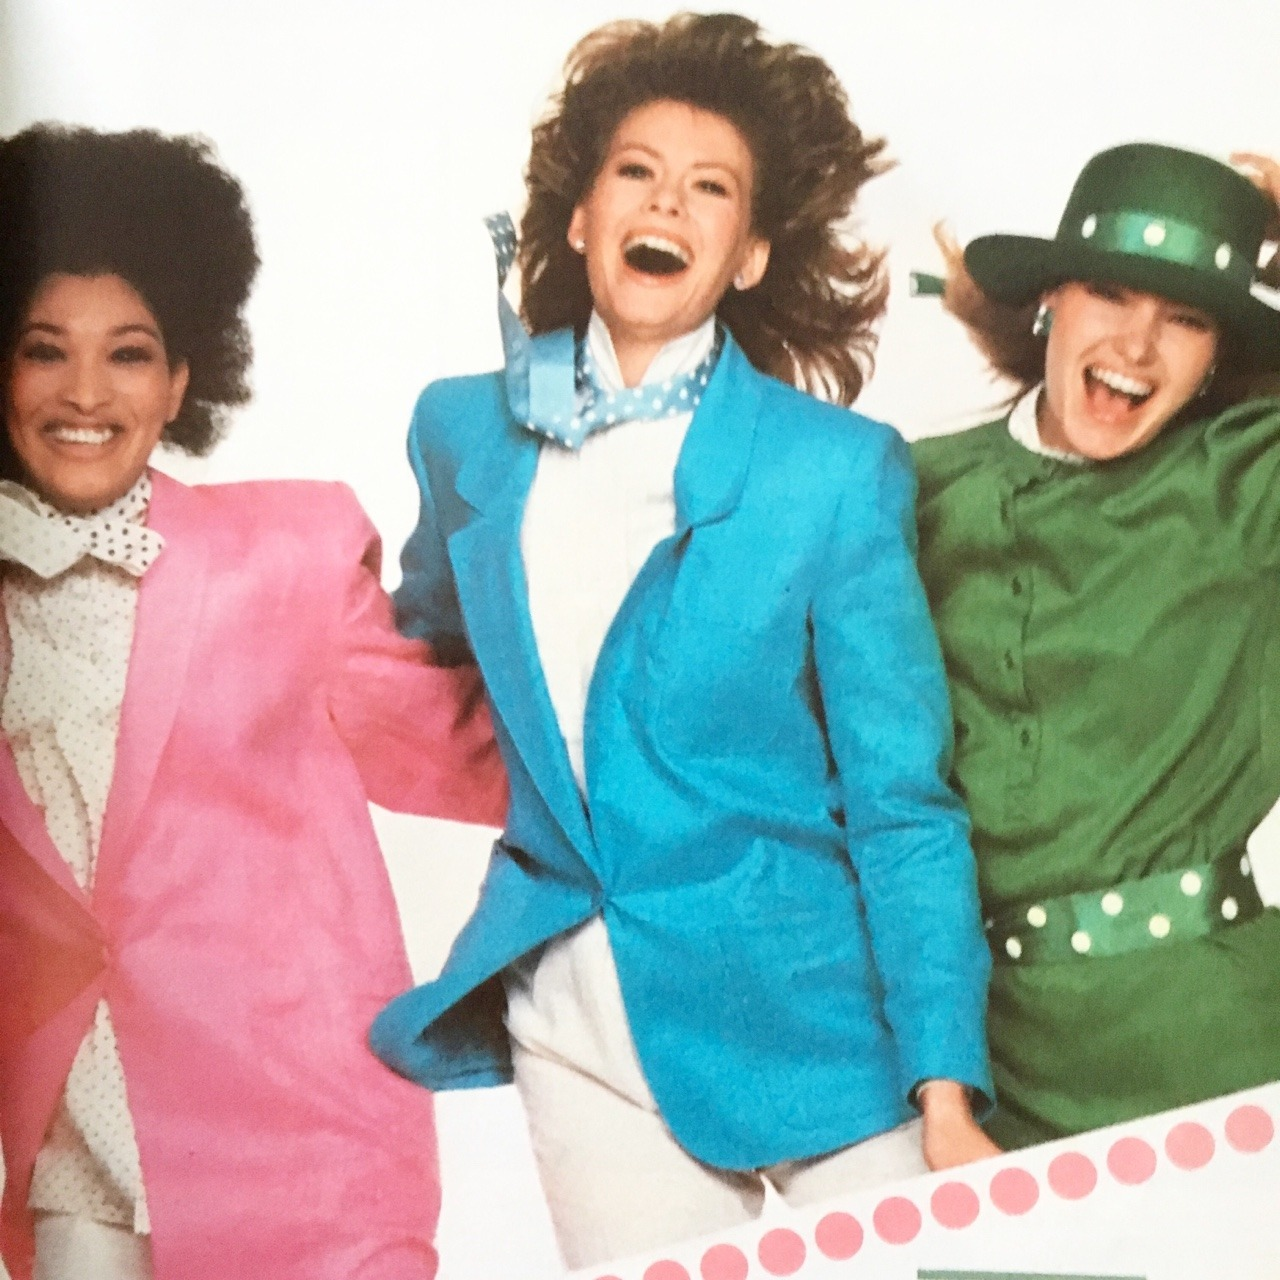 """Today's prompt was """"yay!"""" and when I came across this image, I just pictured them all cheering.     From an ad for New Freedom Maxi Pads.     Cosmopolitan. June 1984.     They look quite ecstatic."""